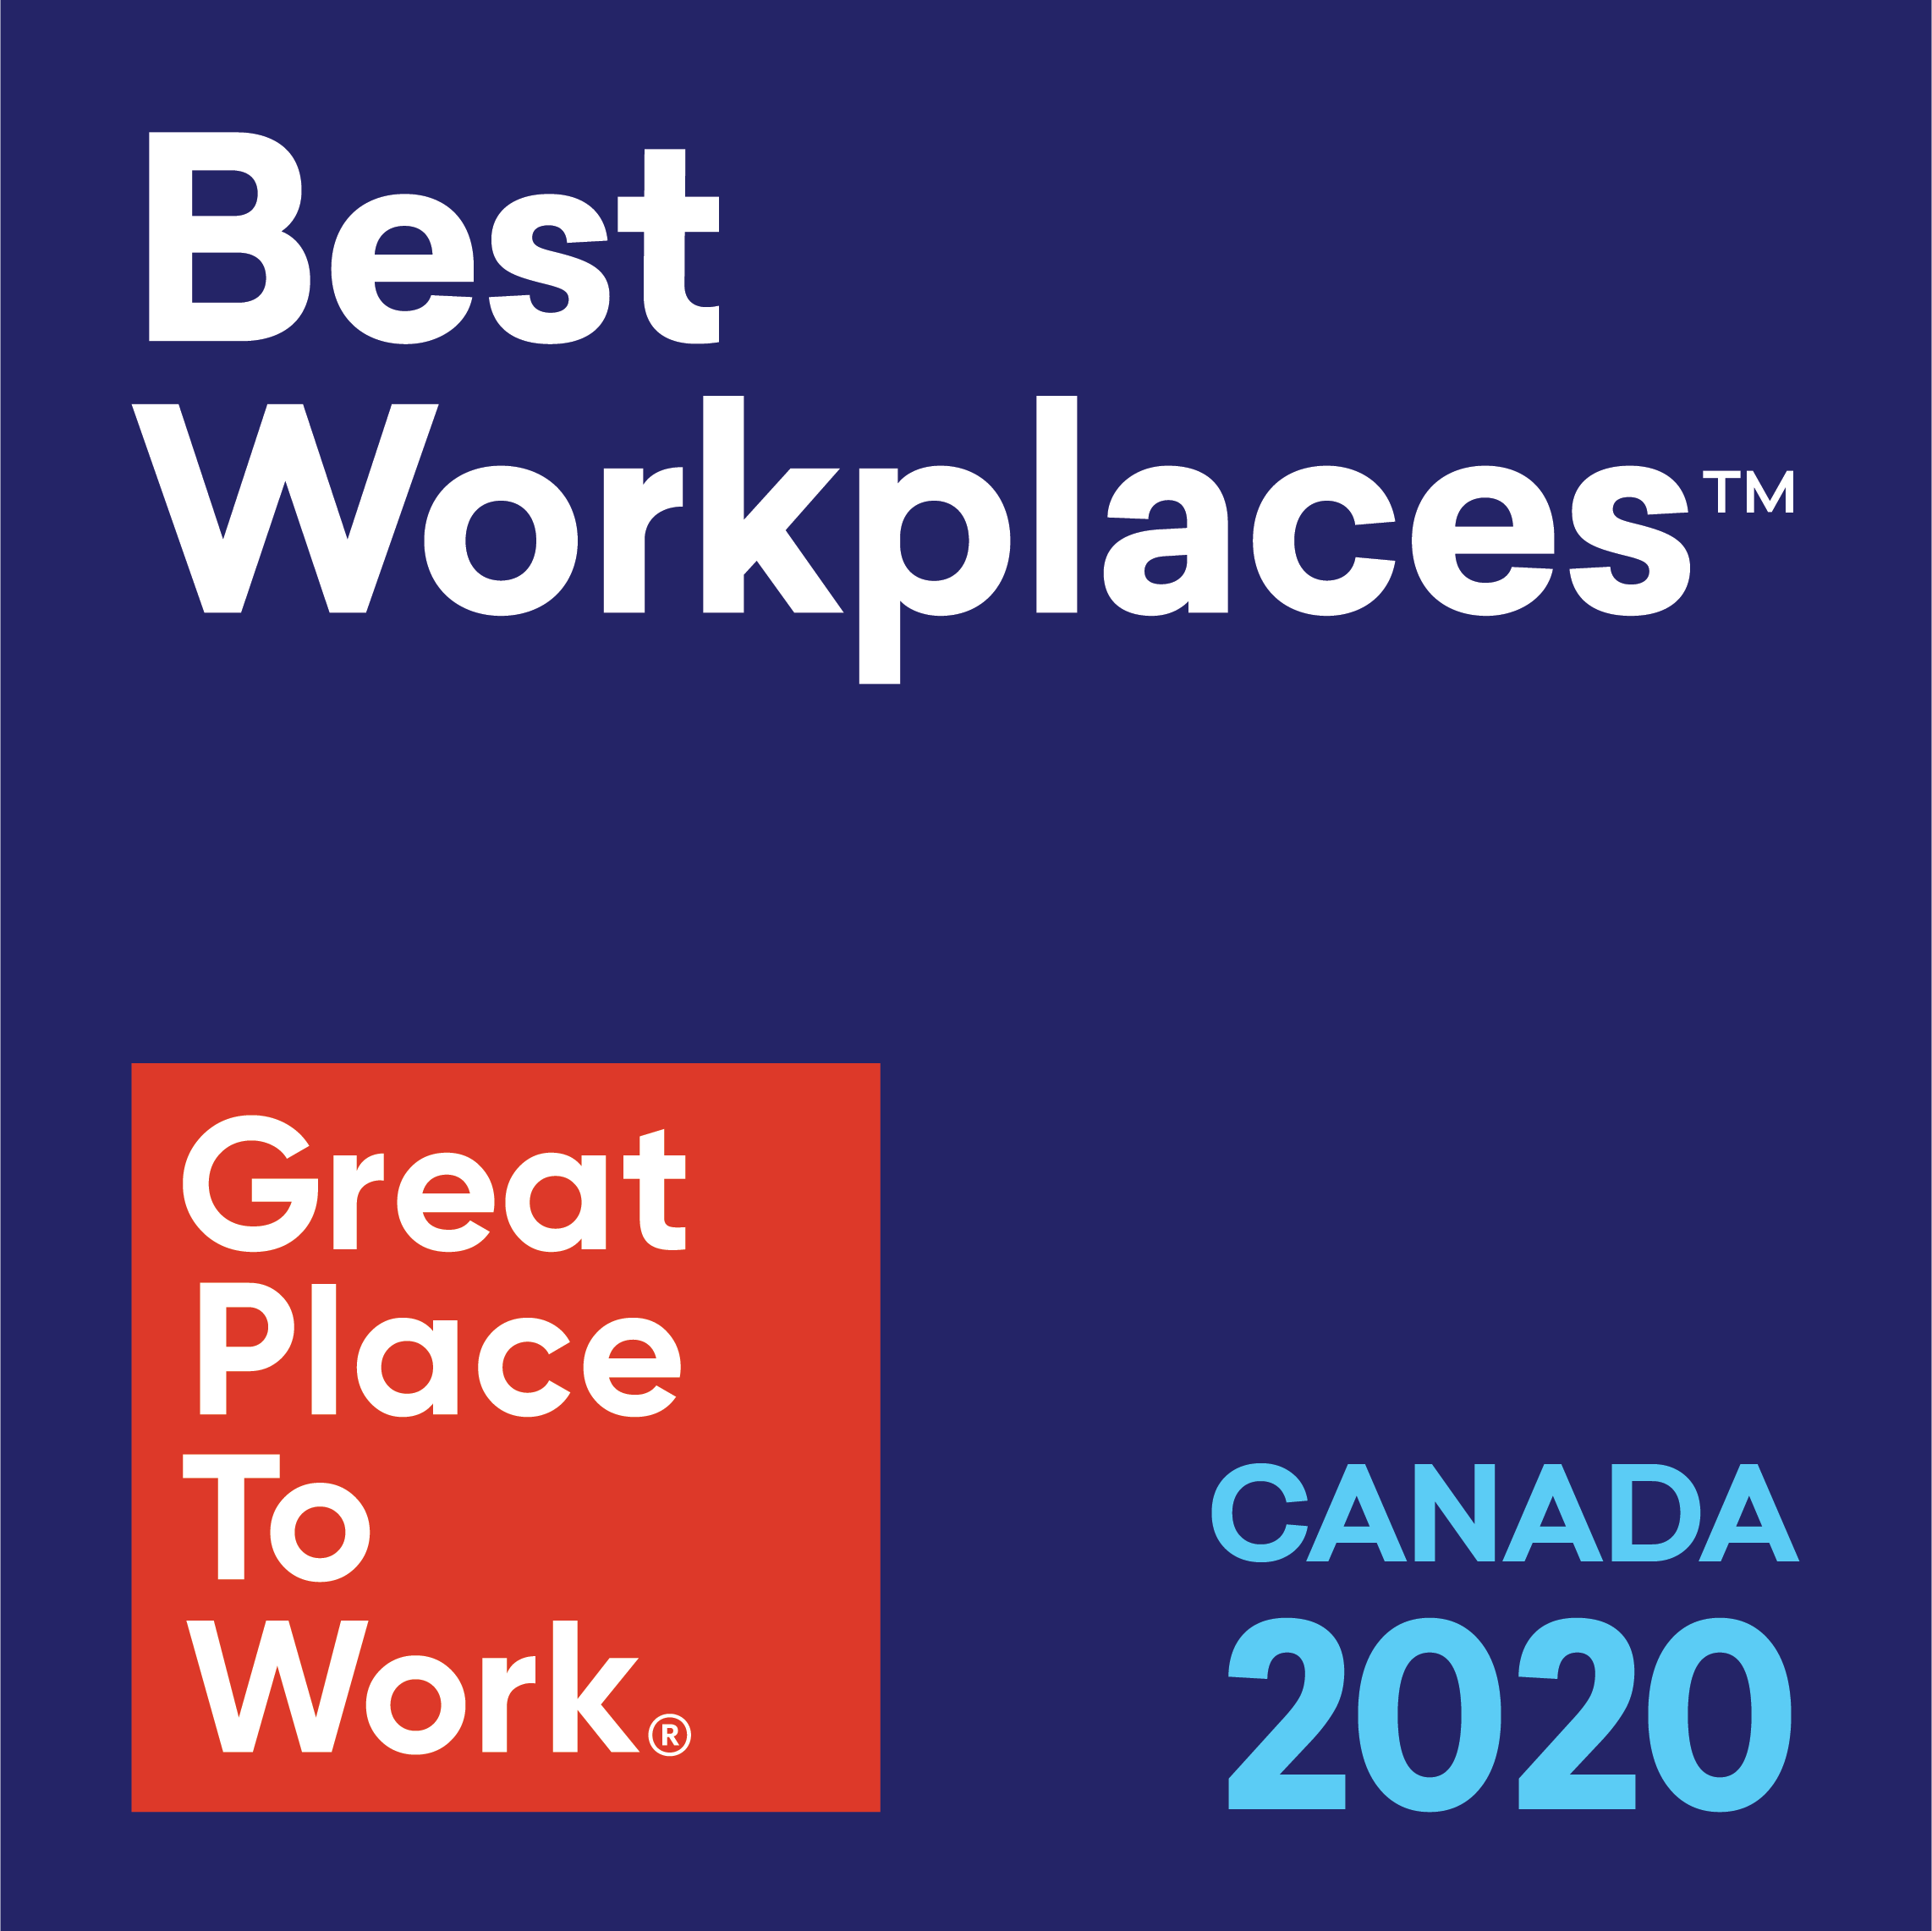 Great Place to Work, Best Workplaces 2020 award graphic